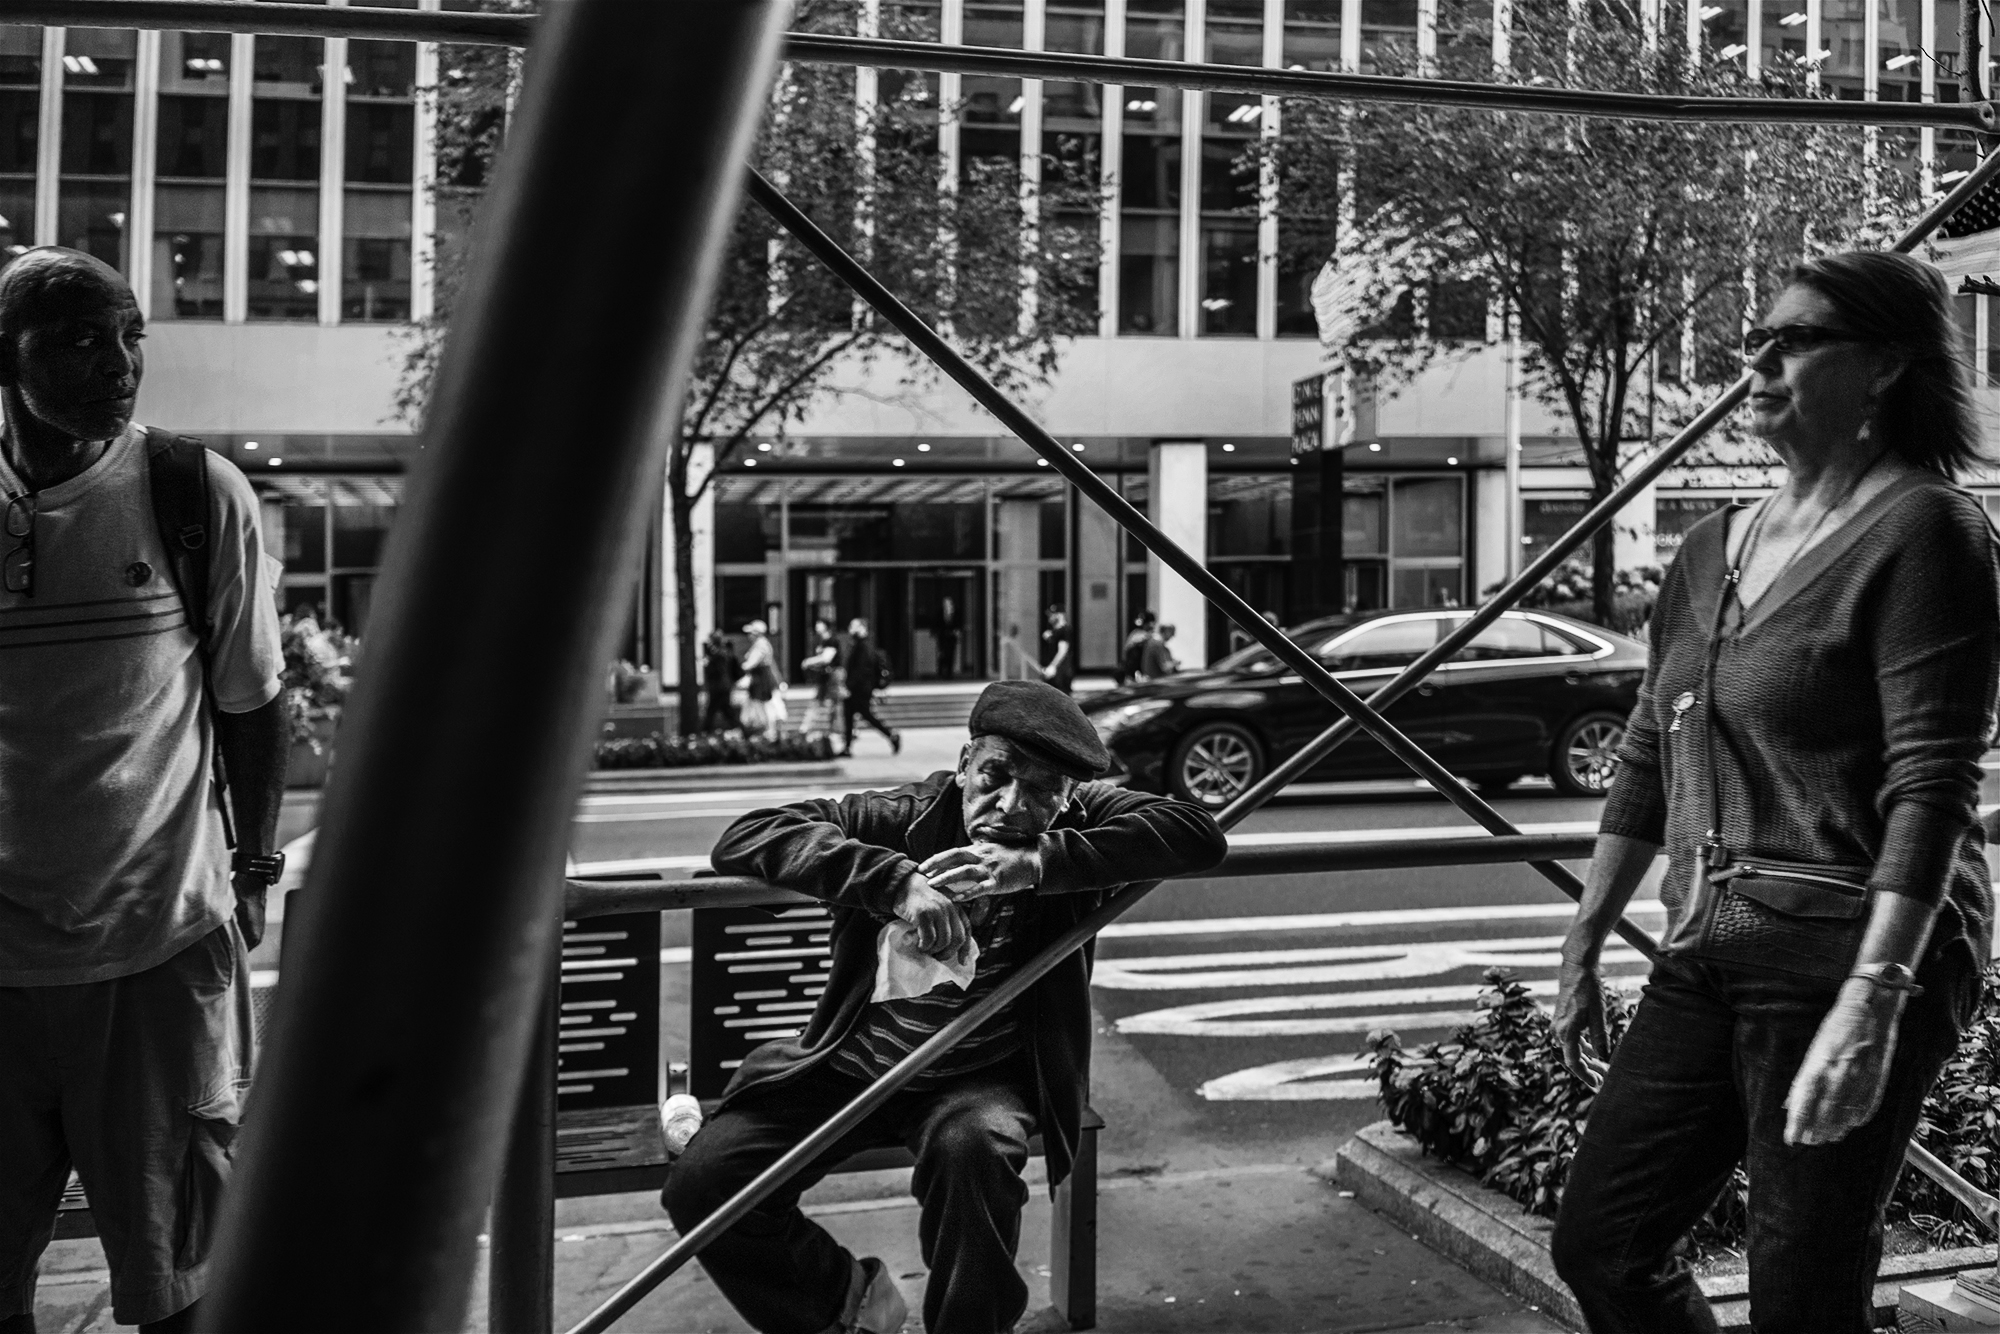 NYC_Street_Man_sleeping_On_Scafholding_2017-004.jpg